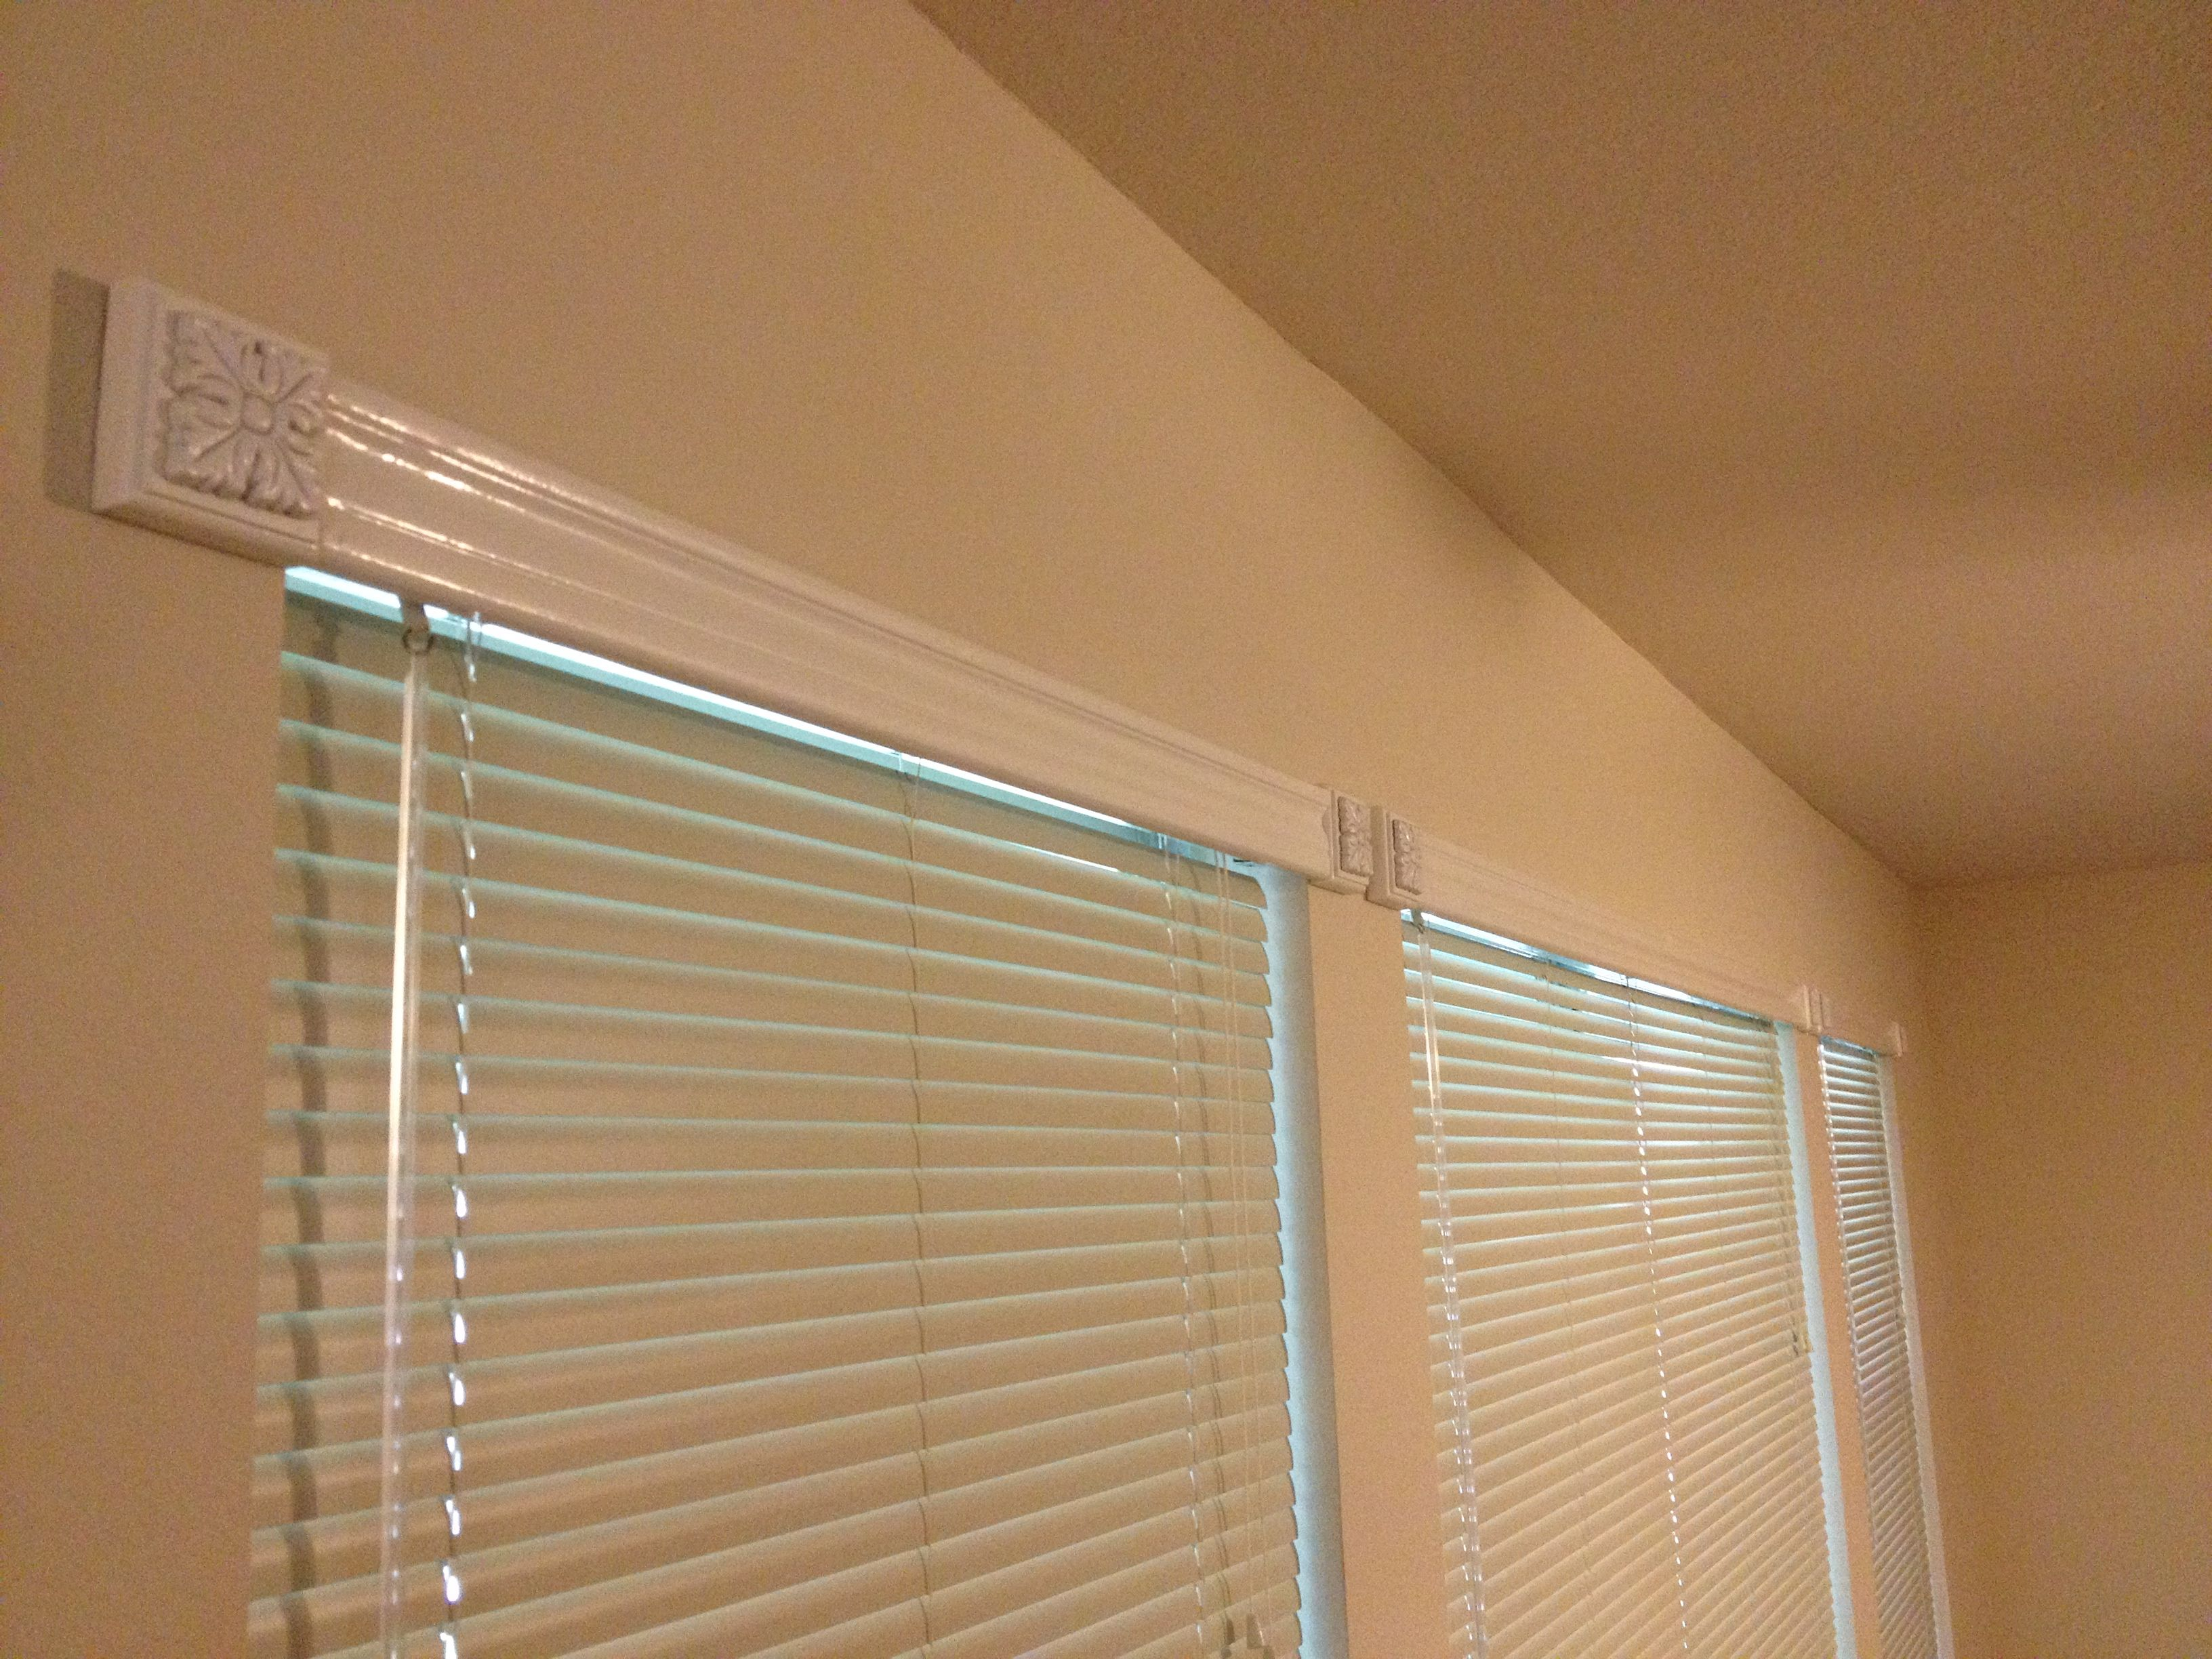 Ordinary Window Treatments For Less Part - 3: Curtain-less Window Treatment - Cover Up The Tops Of The Mini-blinds With